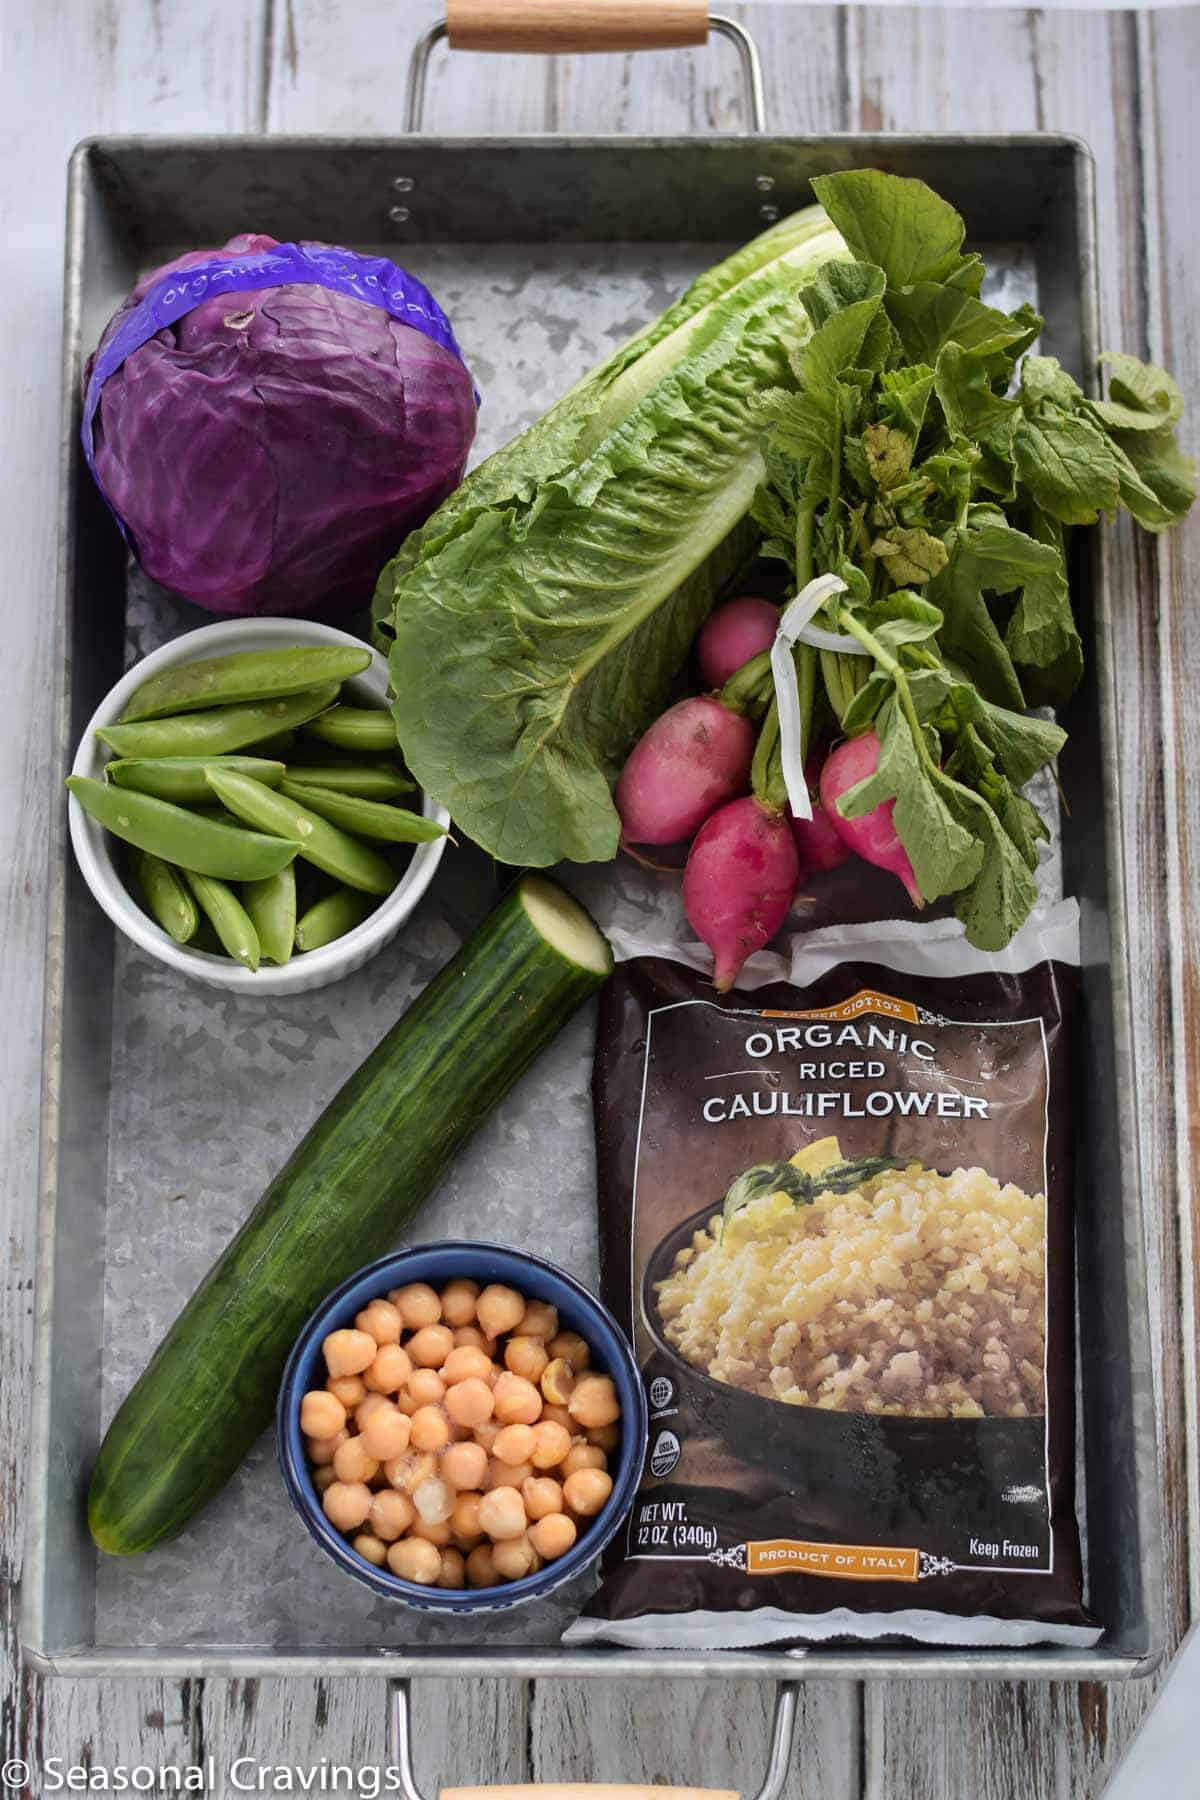 Green Cauliflower Rice Salad ingredients in a silver tray